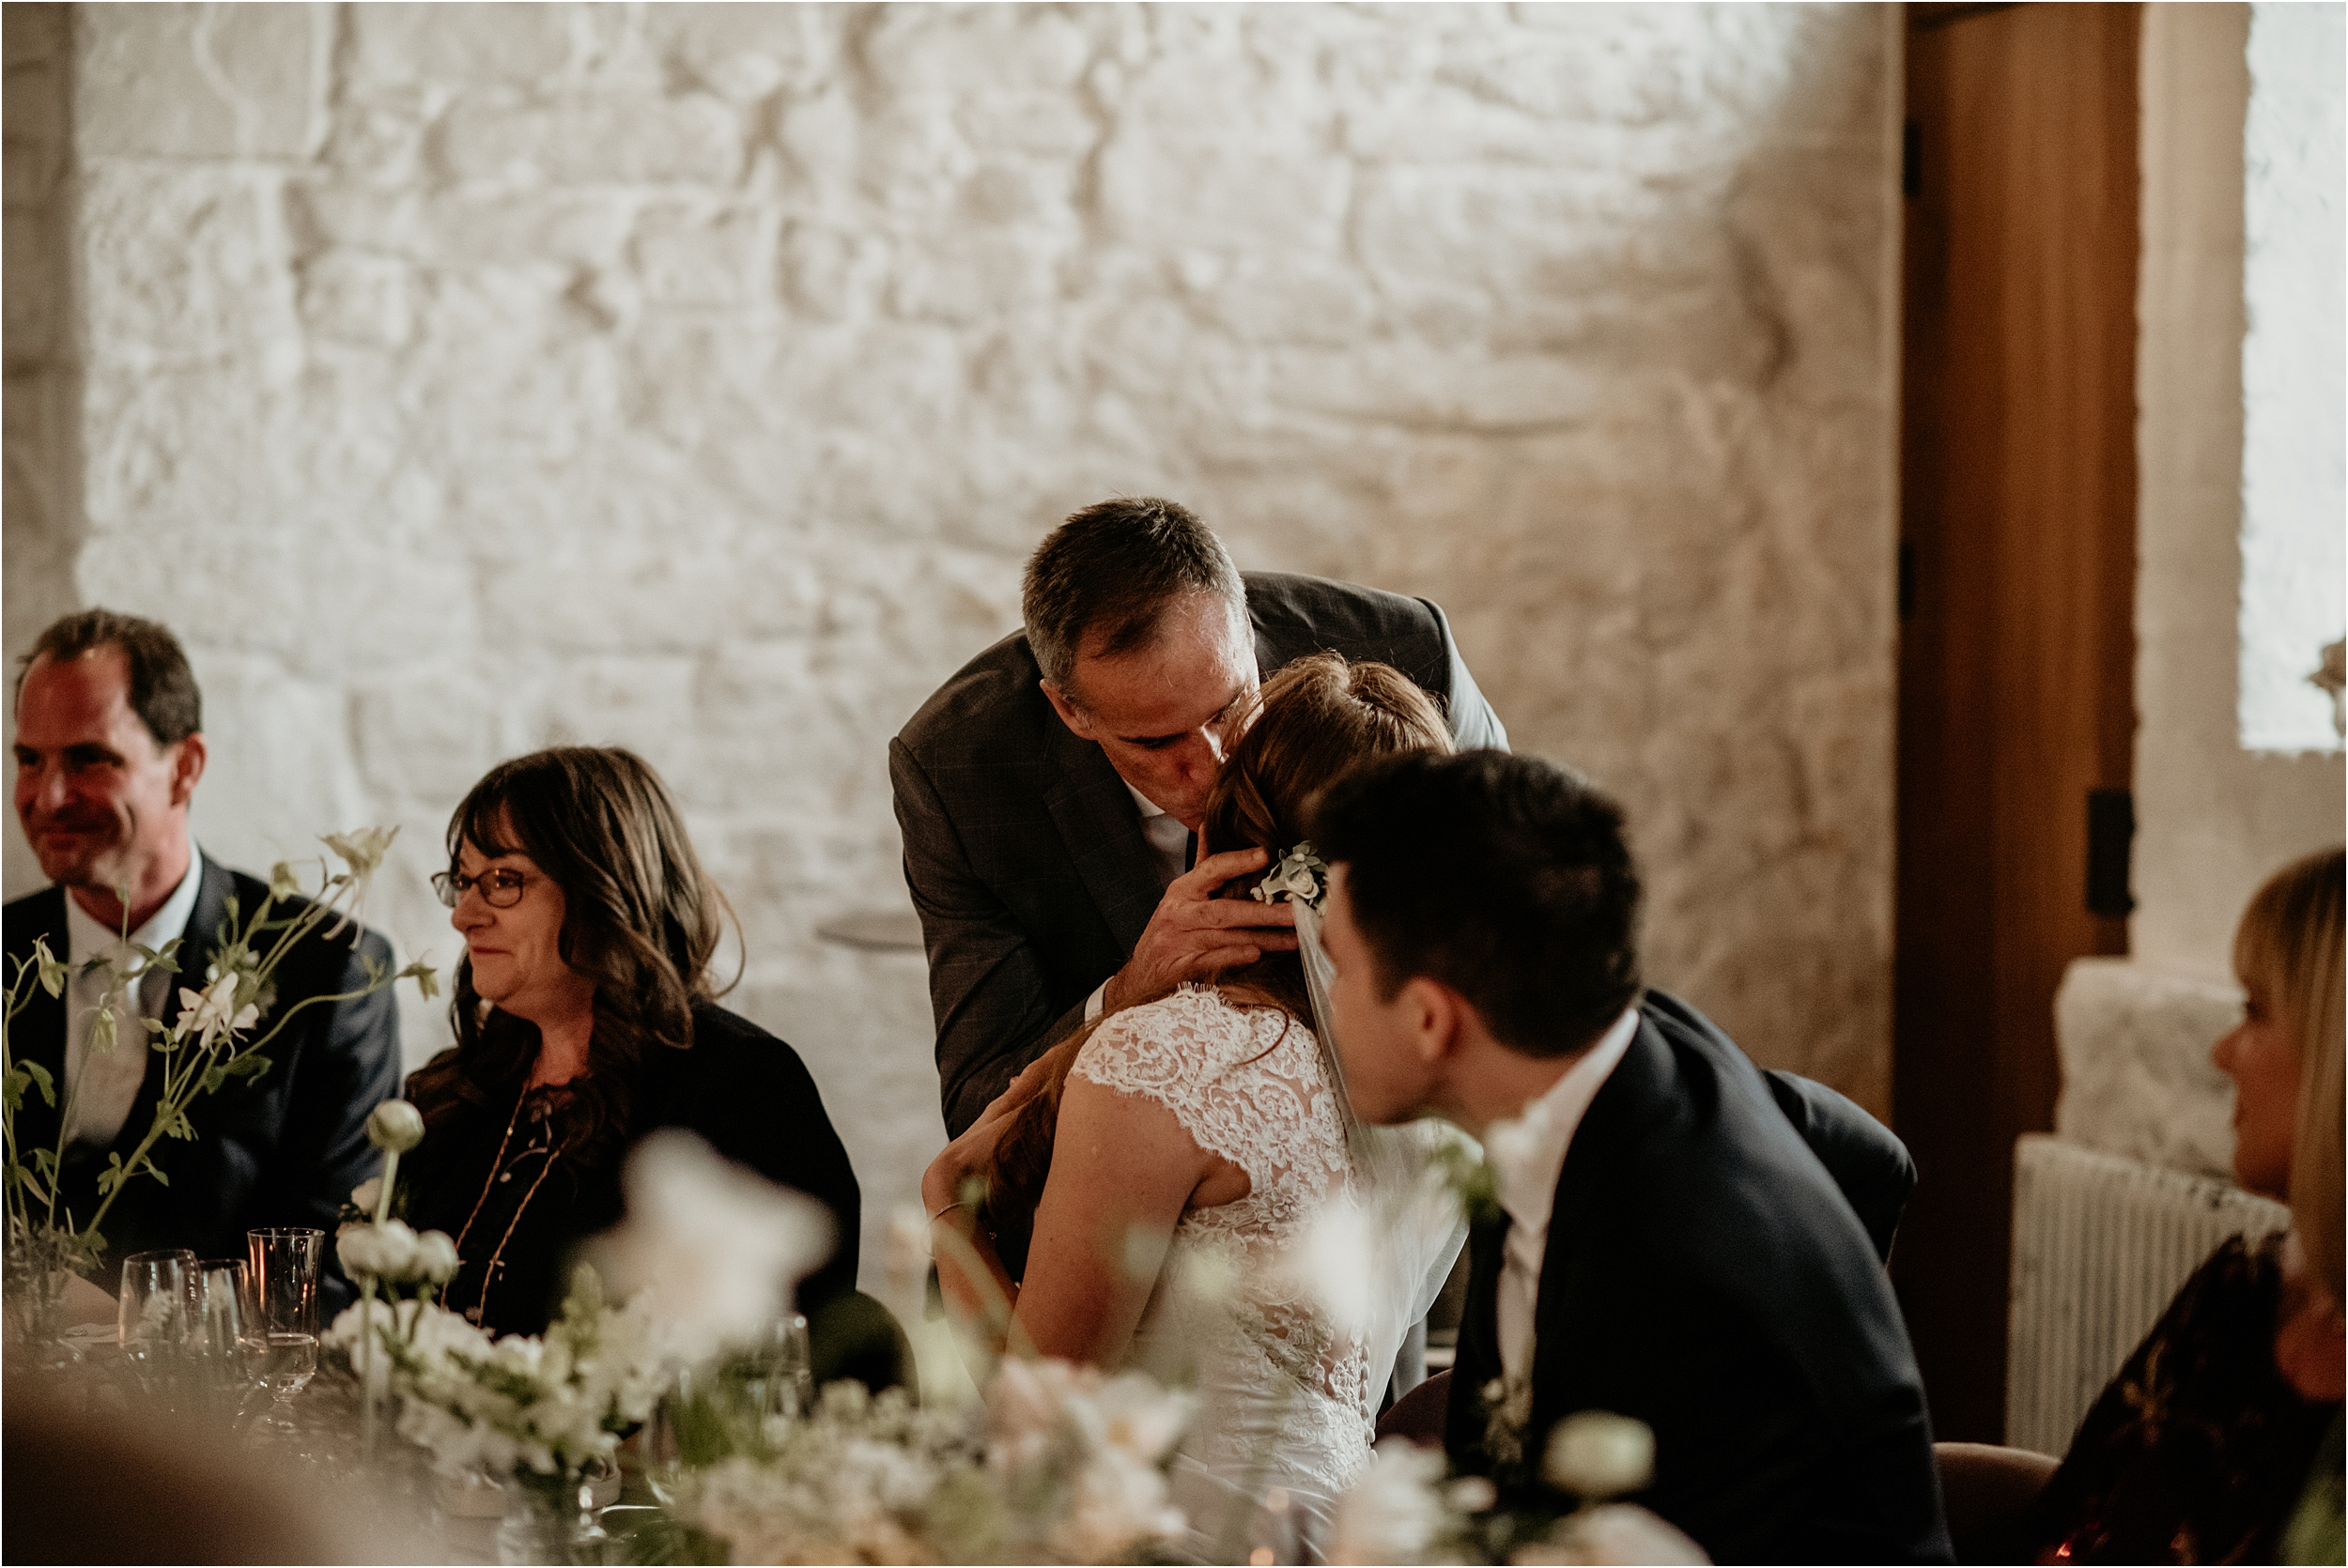 Timberyard-Edinburgh-wedding-photography__0096.jpg